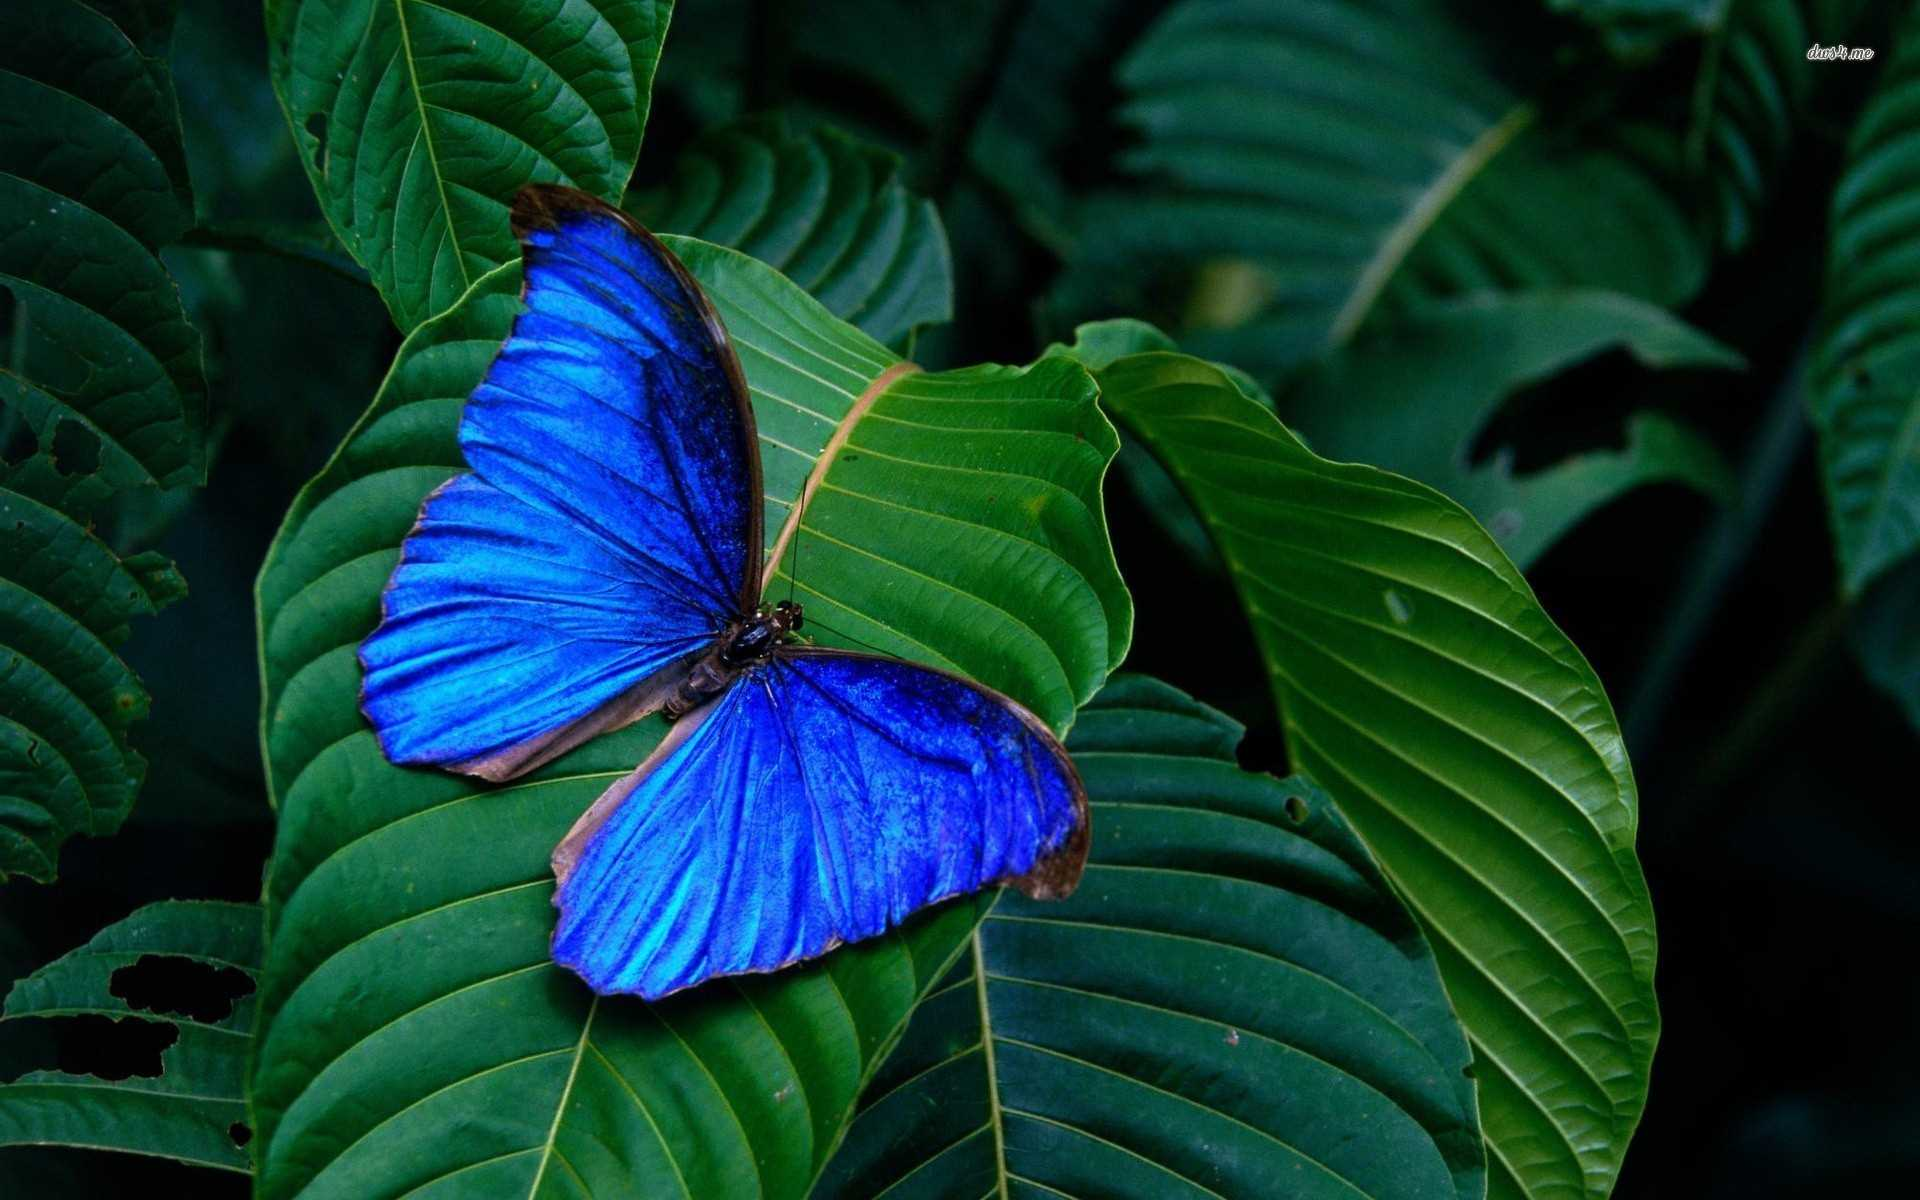 Blue Butterfly Wallpapers (46 Wallpapers) - Adorable ...